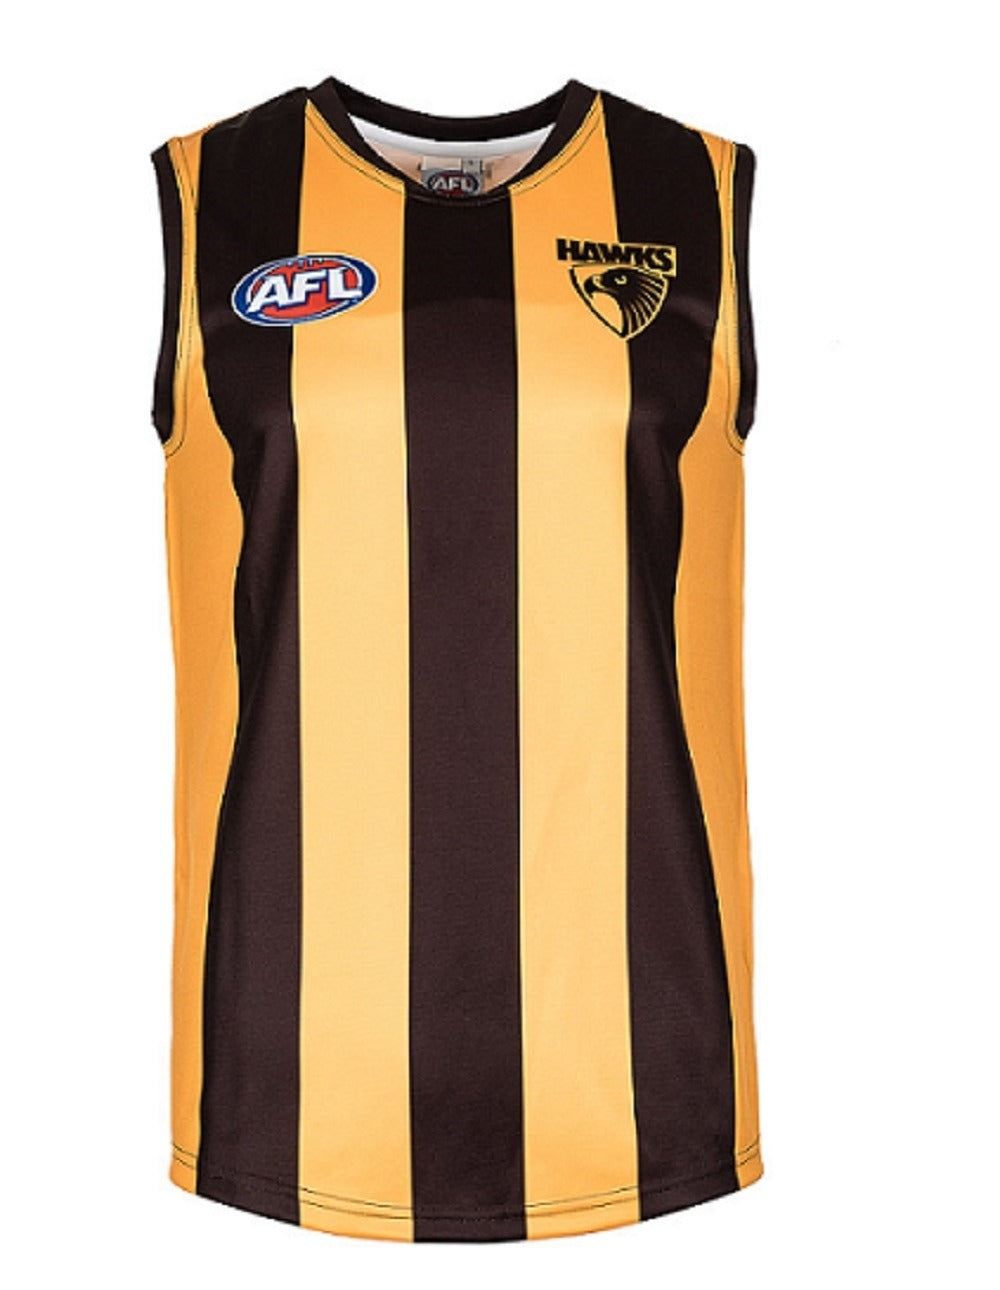 Hawthorn Hawks Official AFL Youth Guernsey Footy Jumper